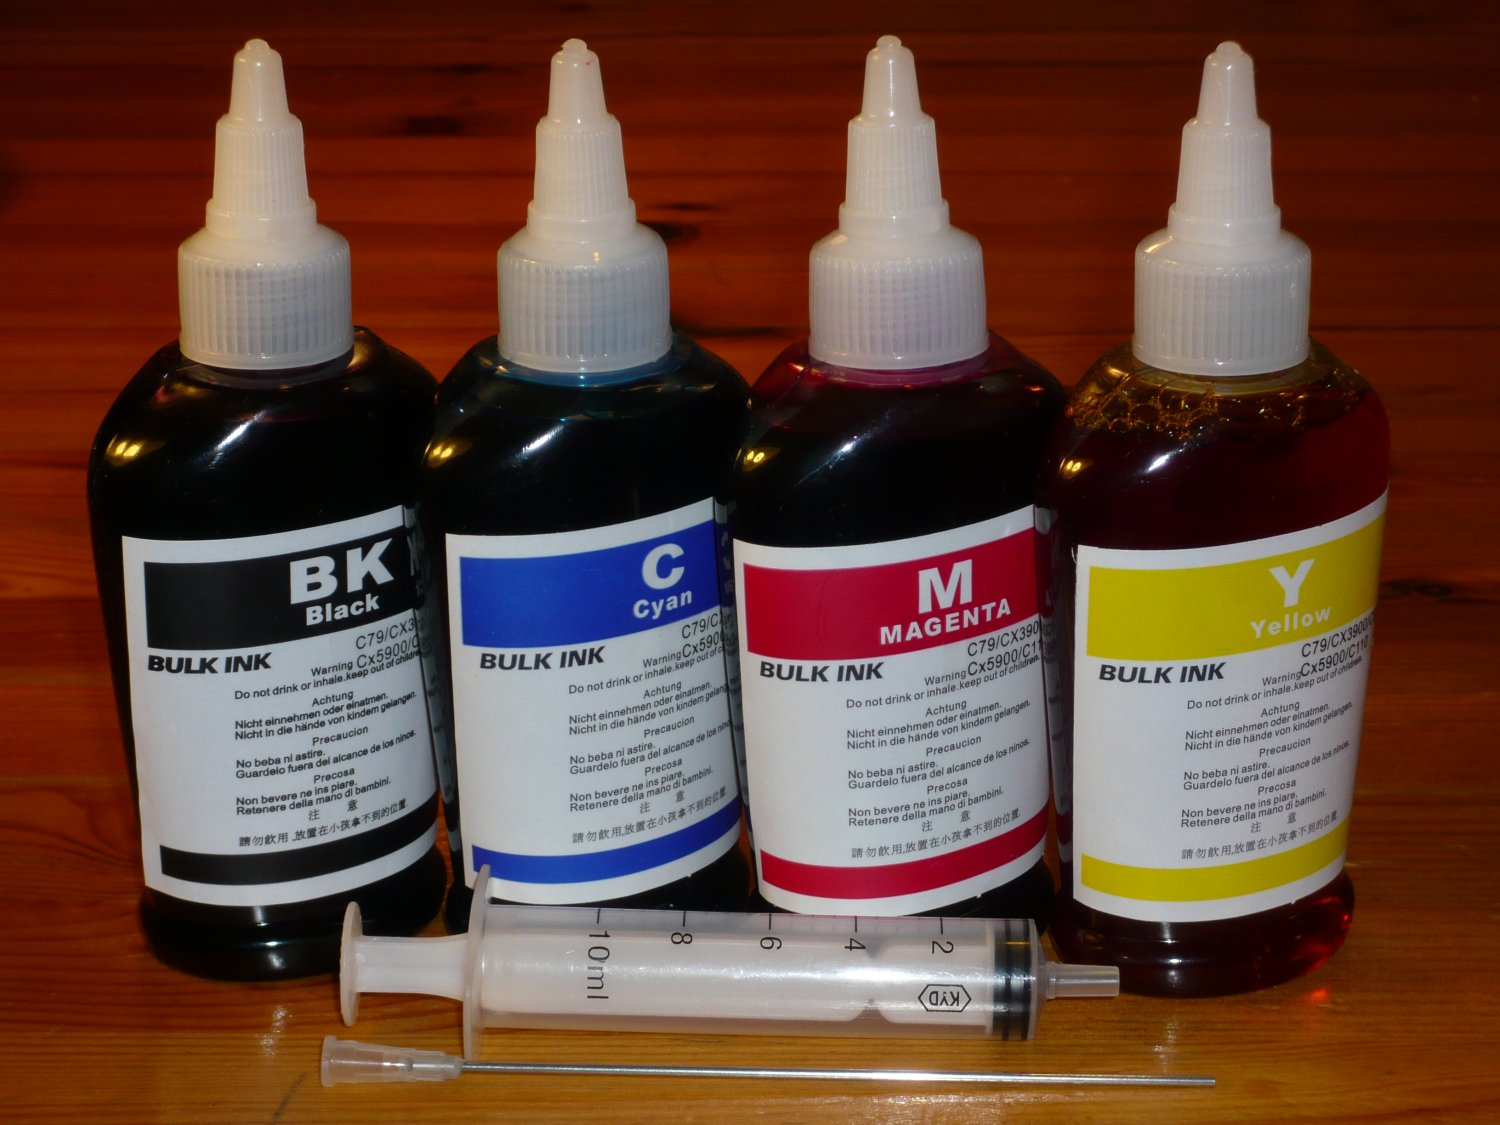 Bulk refill ink for HP ink printer, 100ml x 4 bottles (Black, Cyan, Magenta, Yellow)